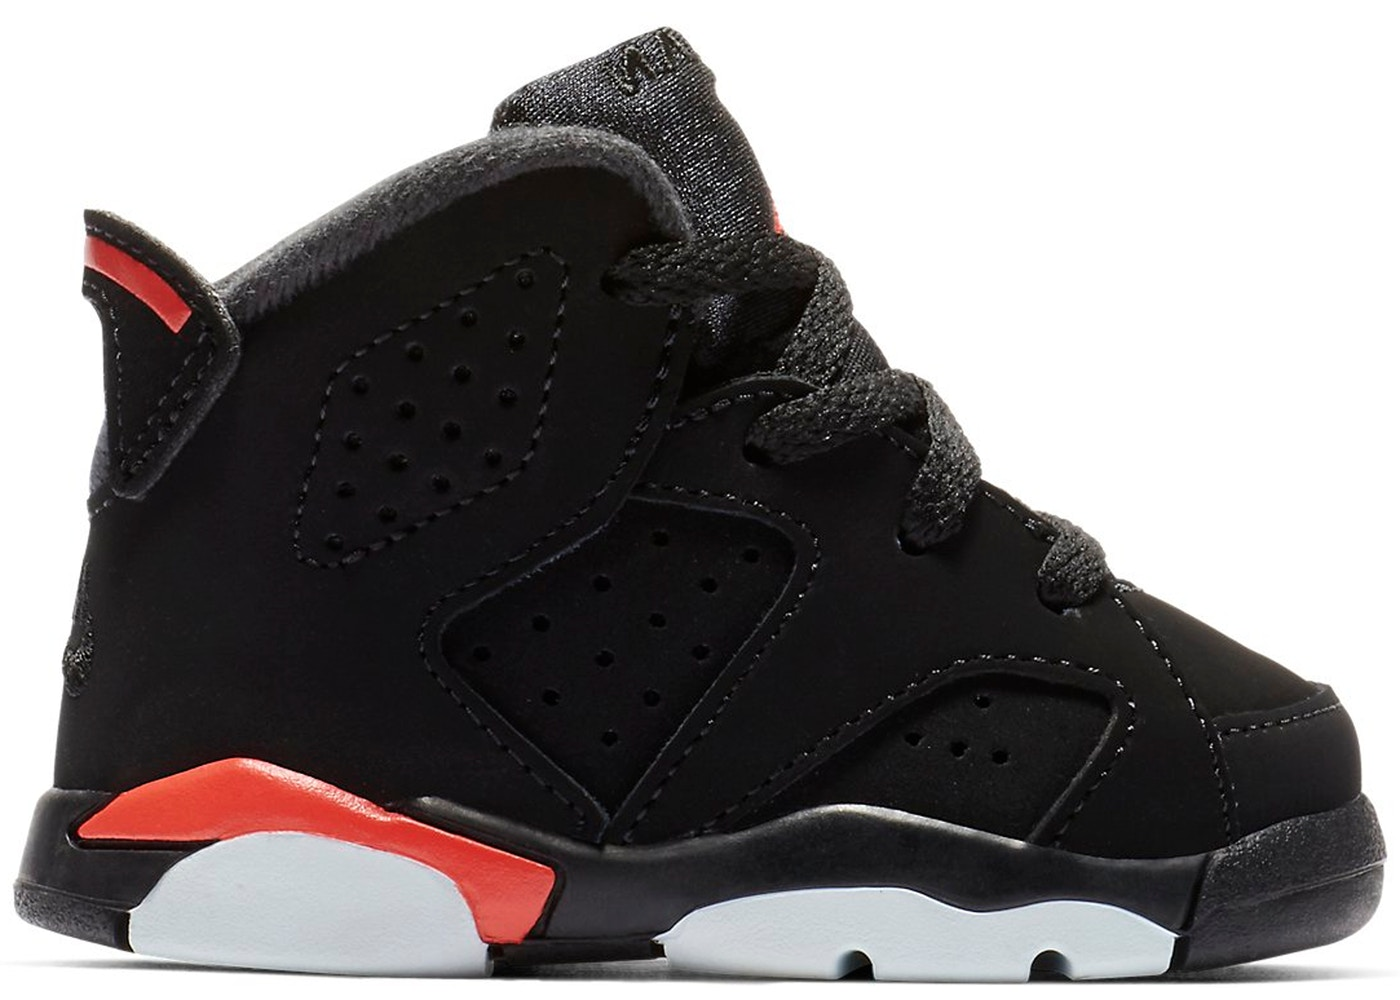 designer fashion 9f556 46f46 Jordan 6 Retro Black Infrared 2019 (TD)